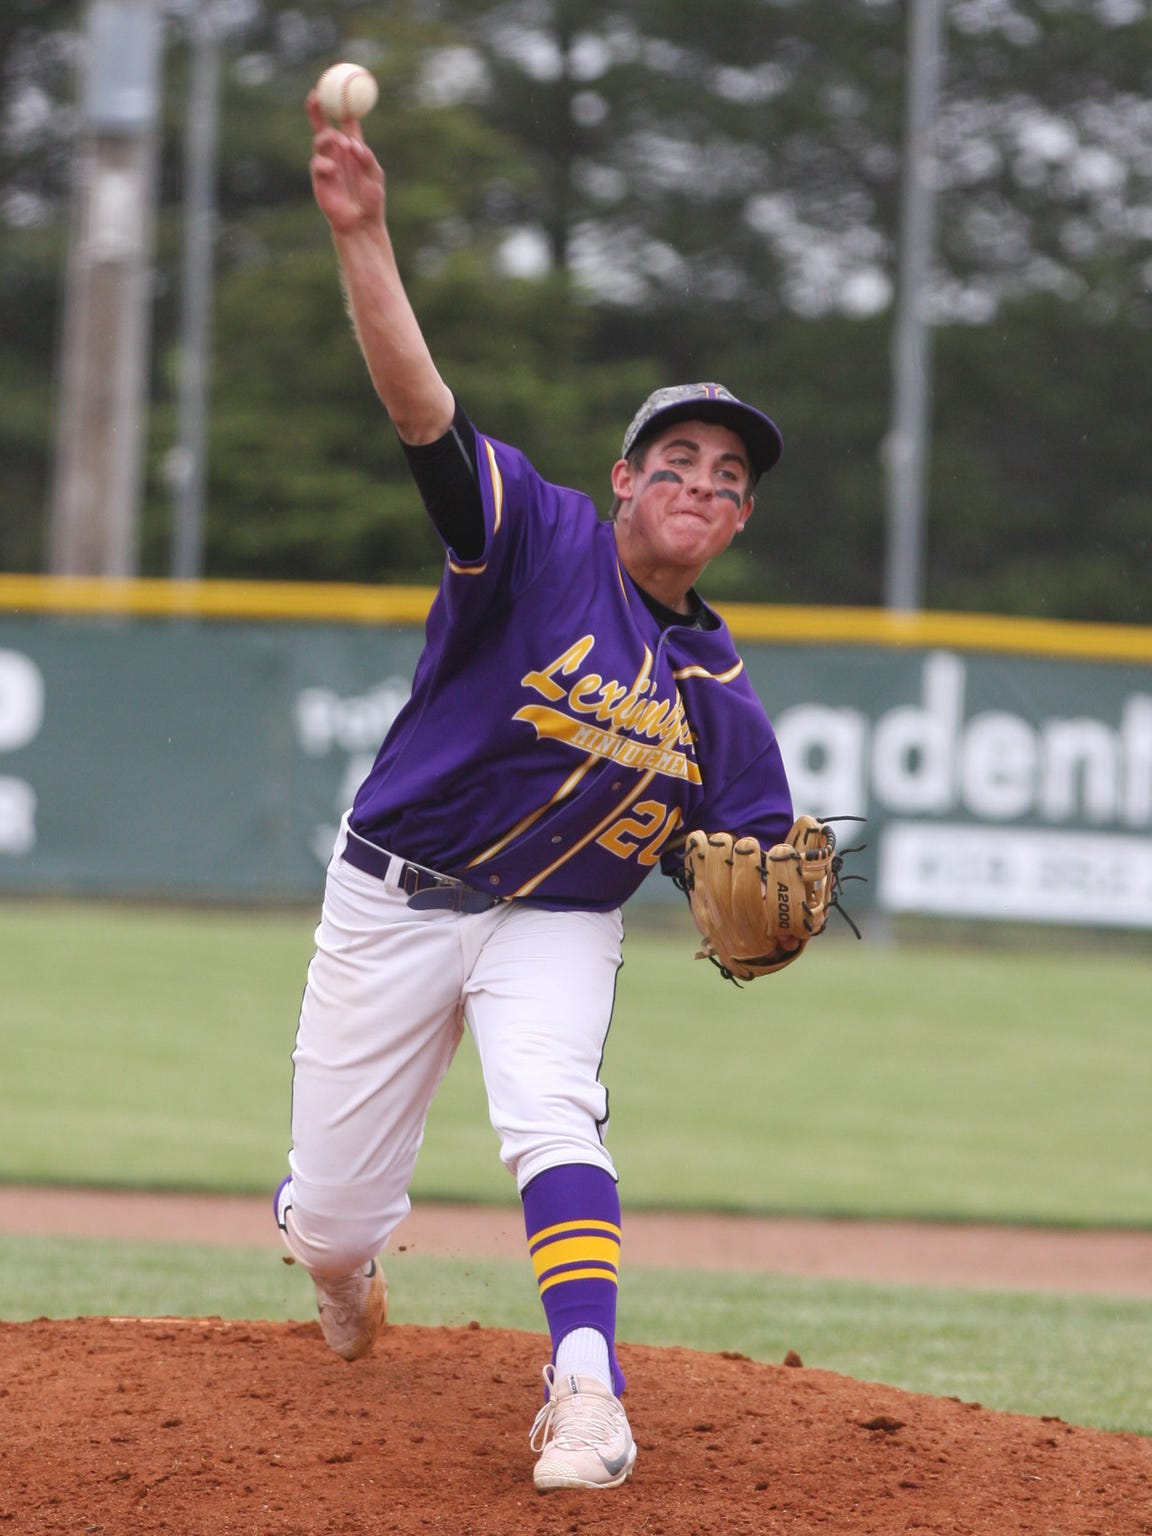 Jared Strickler pitches for Lexington in a Division